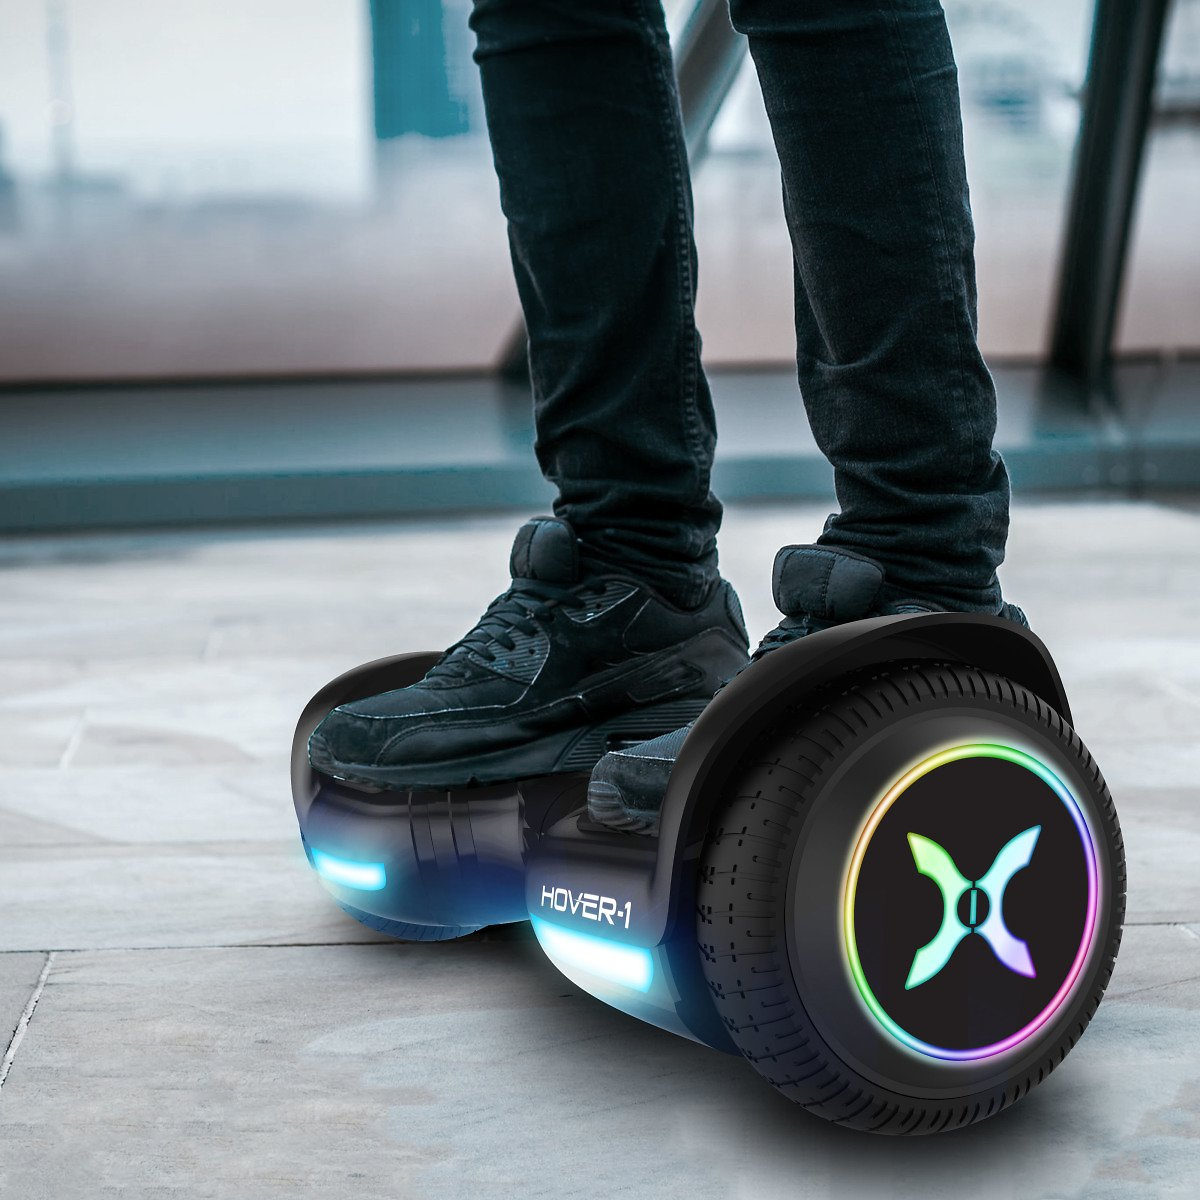 Hover-1 Nova Hoverboard w/ LED Wheels & Headlight